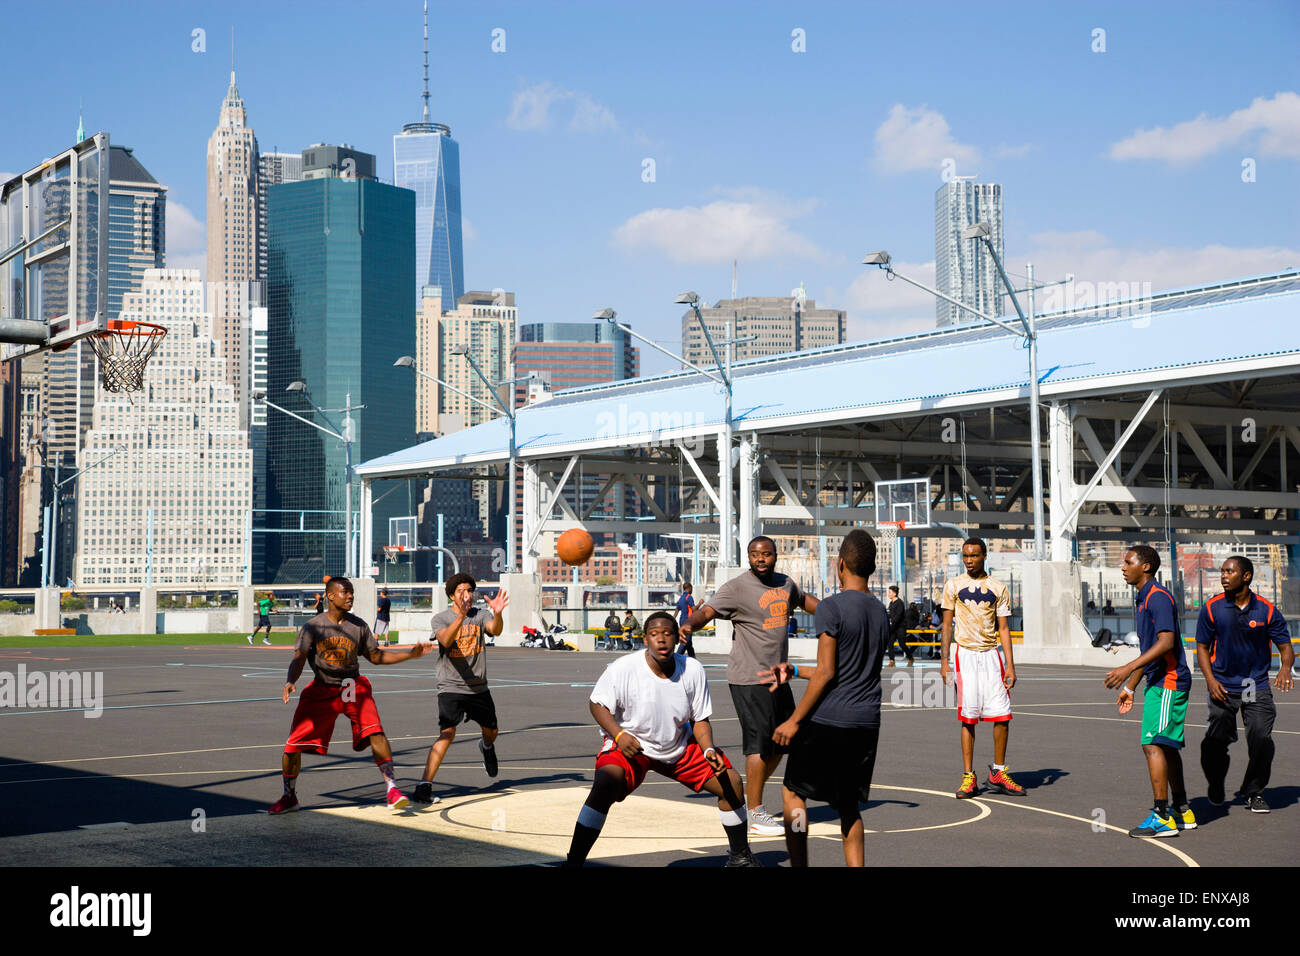 Rooftop Basketball Court New York City